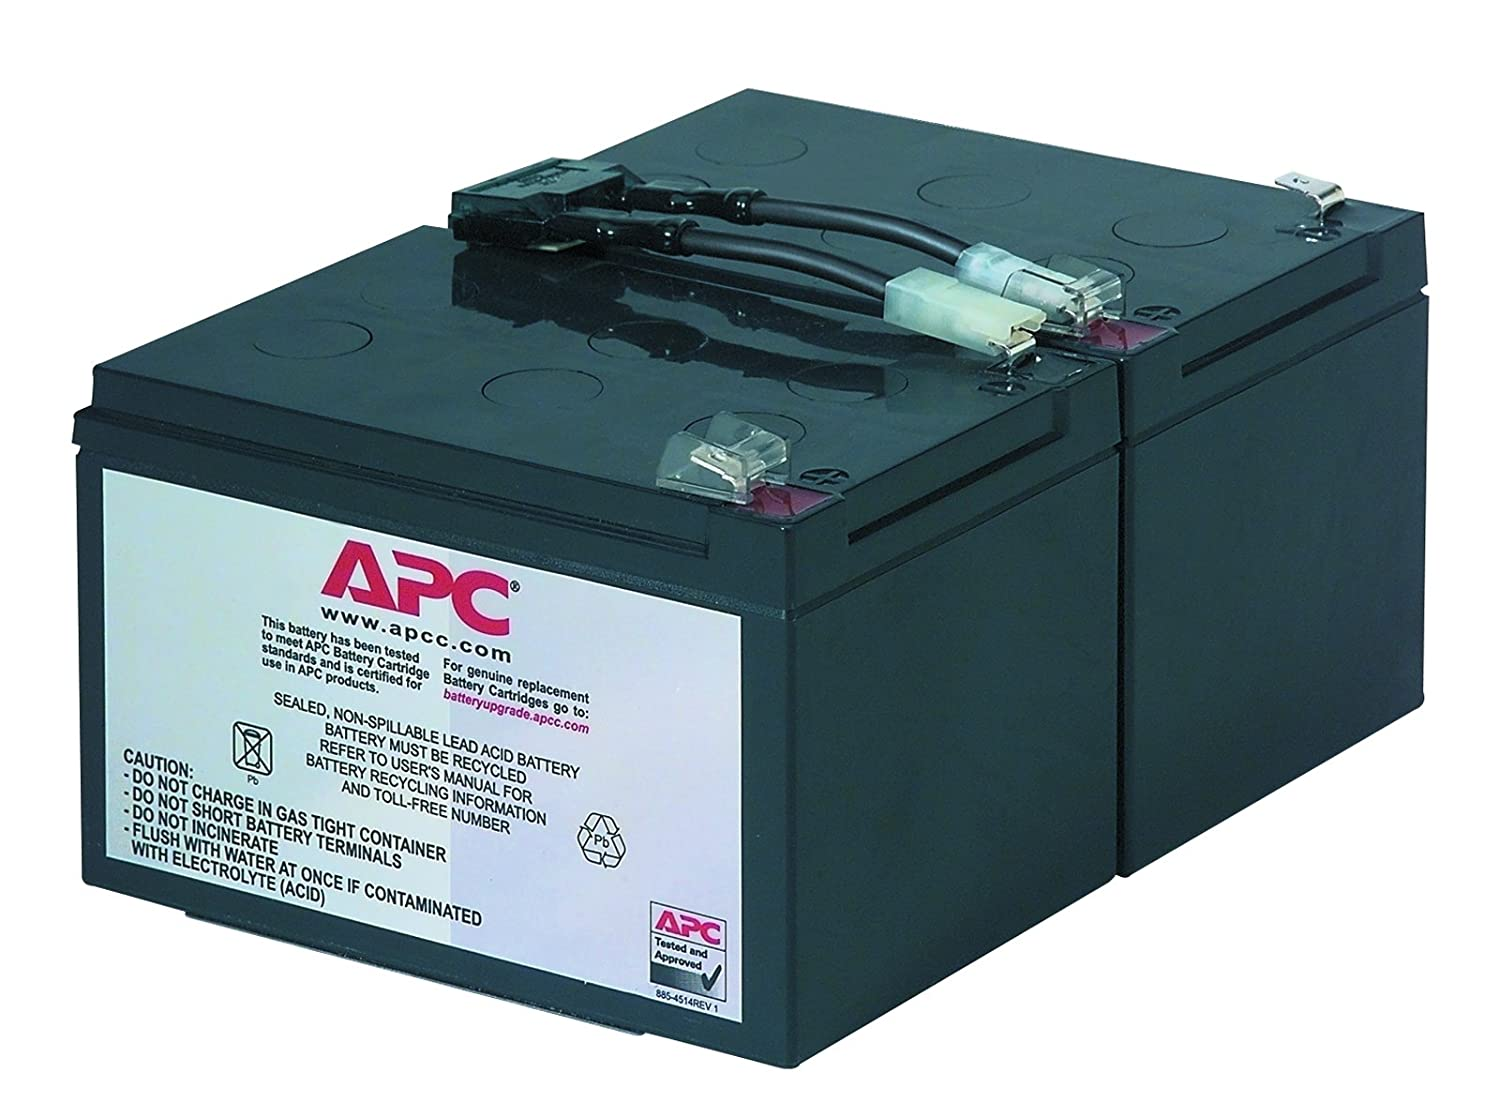 WRG-3749] Apc 1500 Battery Wiring Diagram Fre on